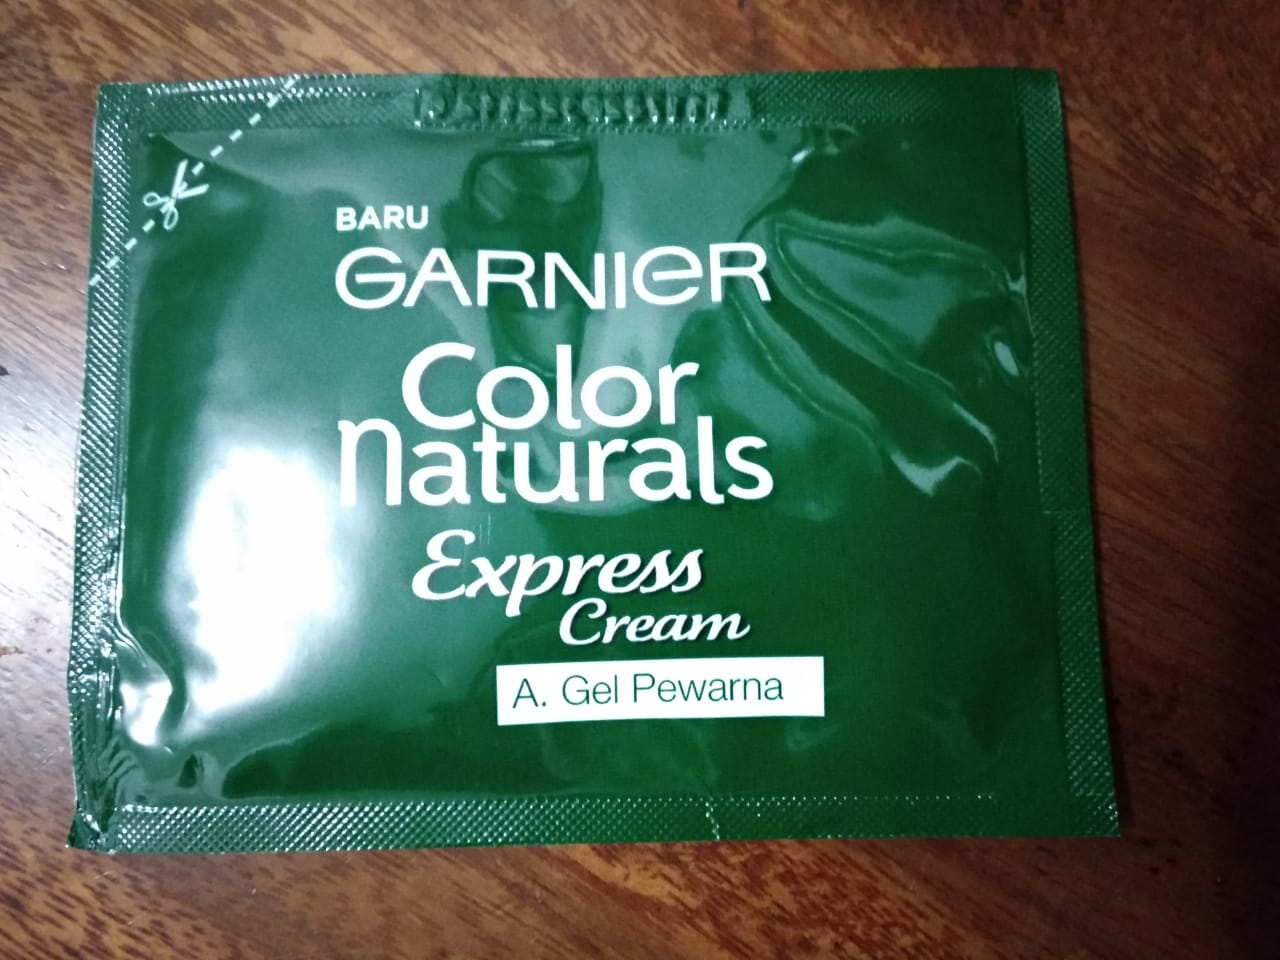 gambar review ke-11 untuk Garnier Color Naturals Express Cream